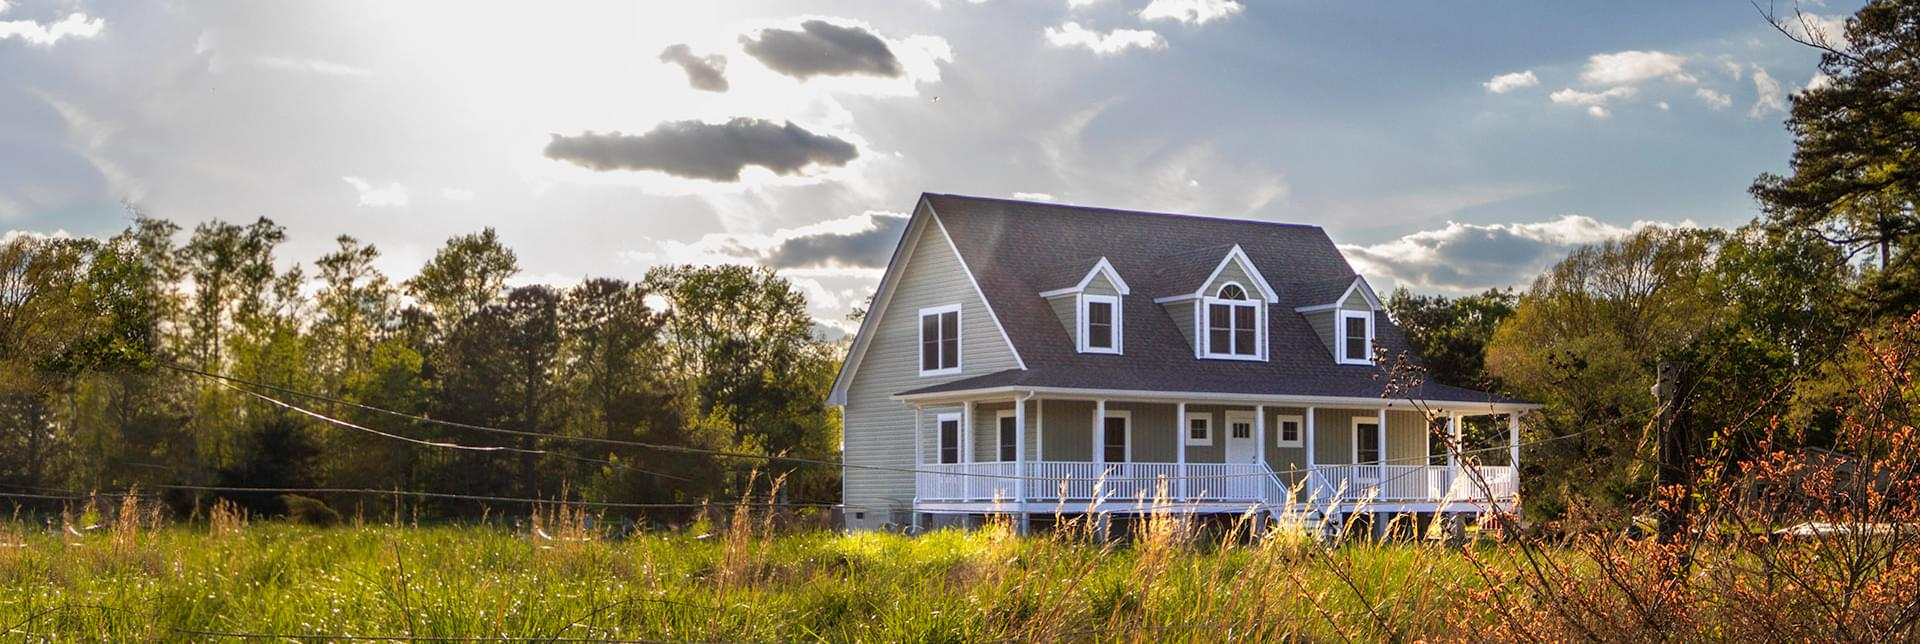 New Homes in Chatham County NC